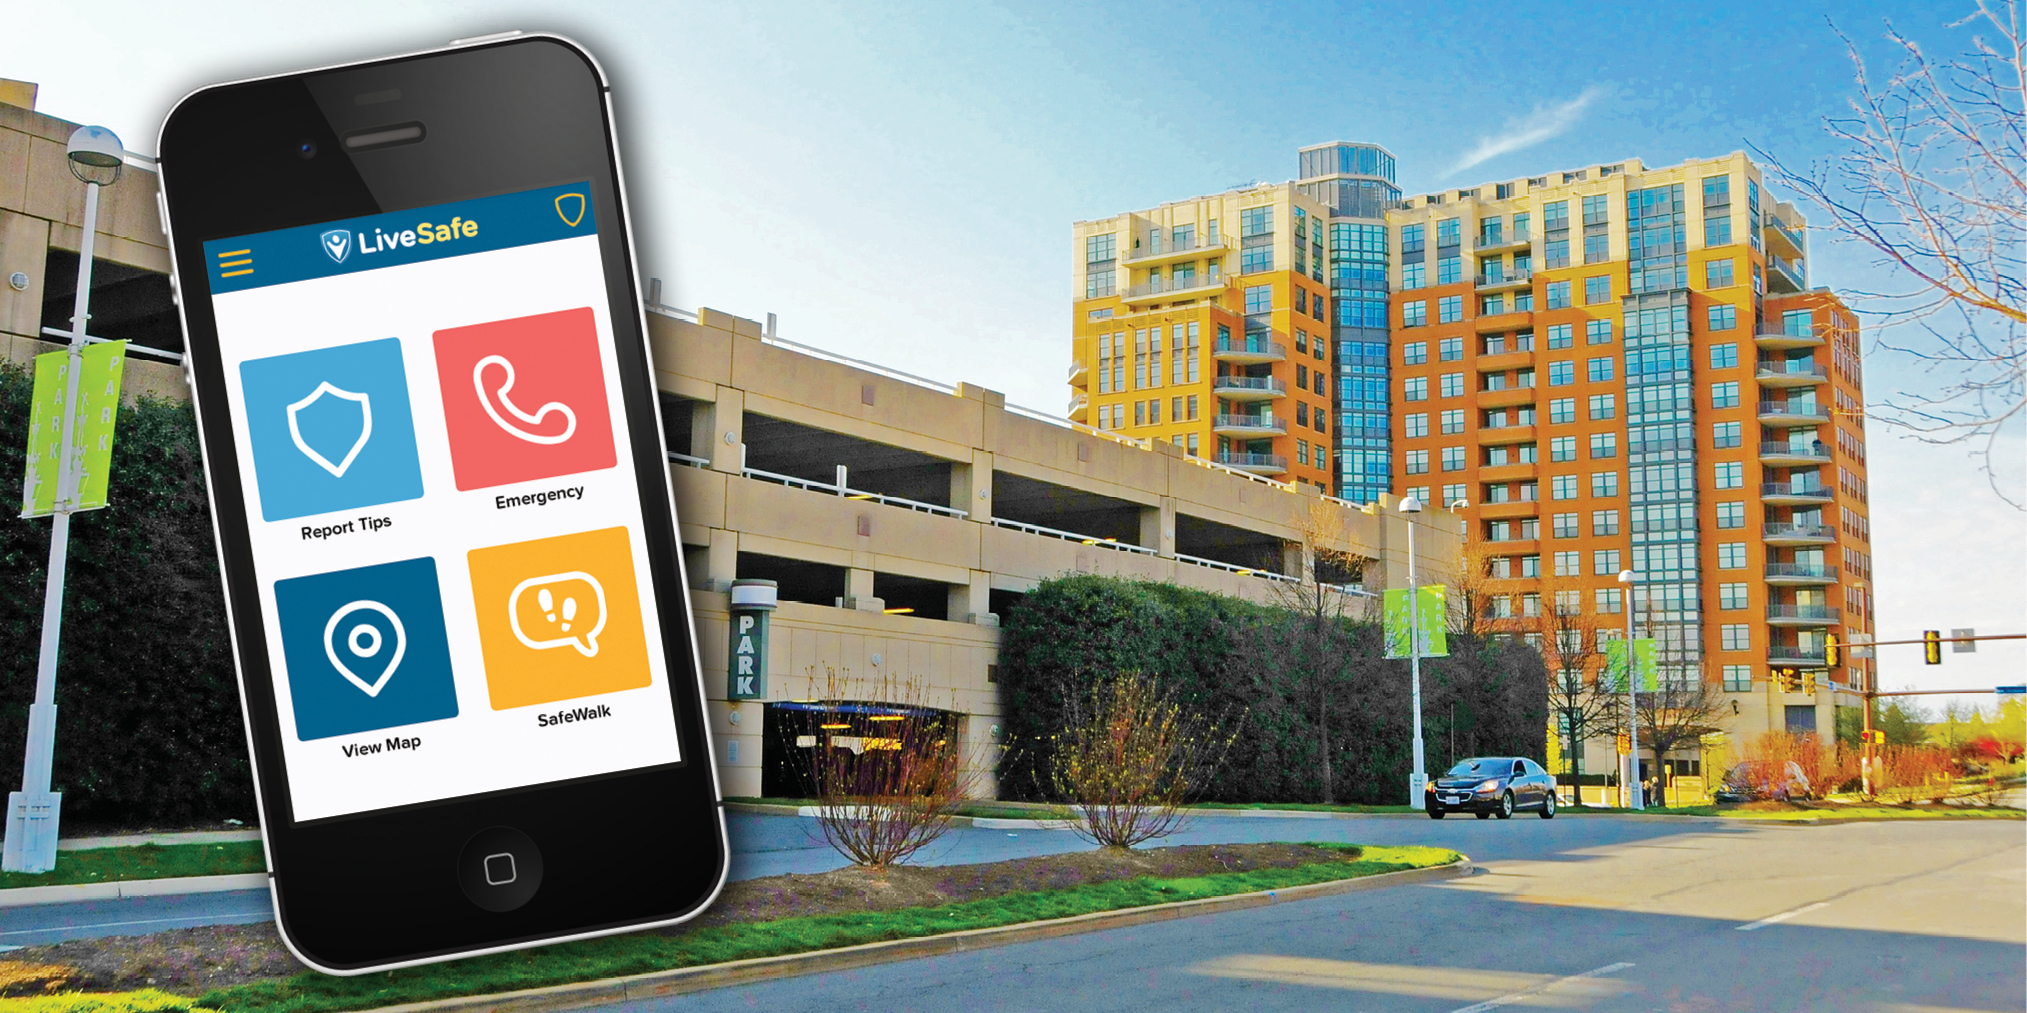 Reston Town Center LiveSafe